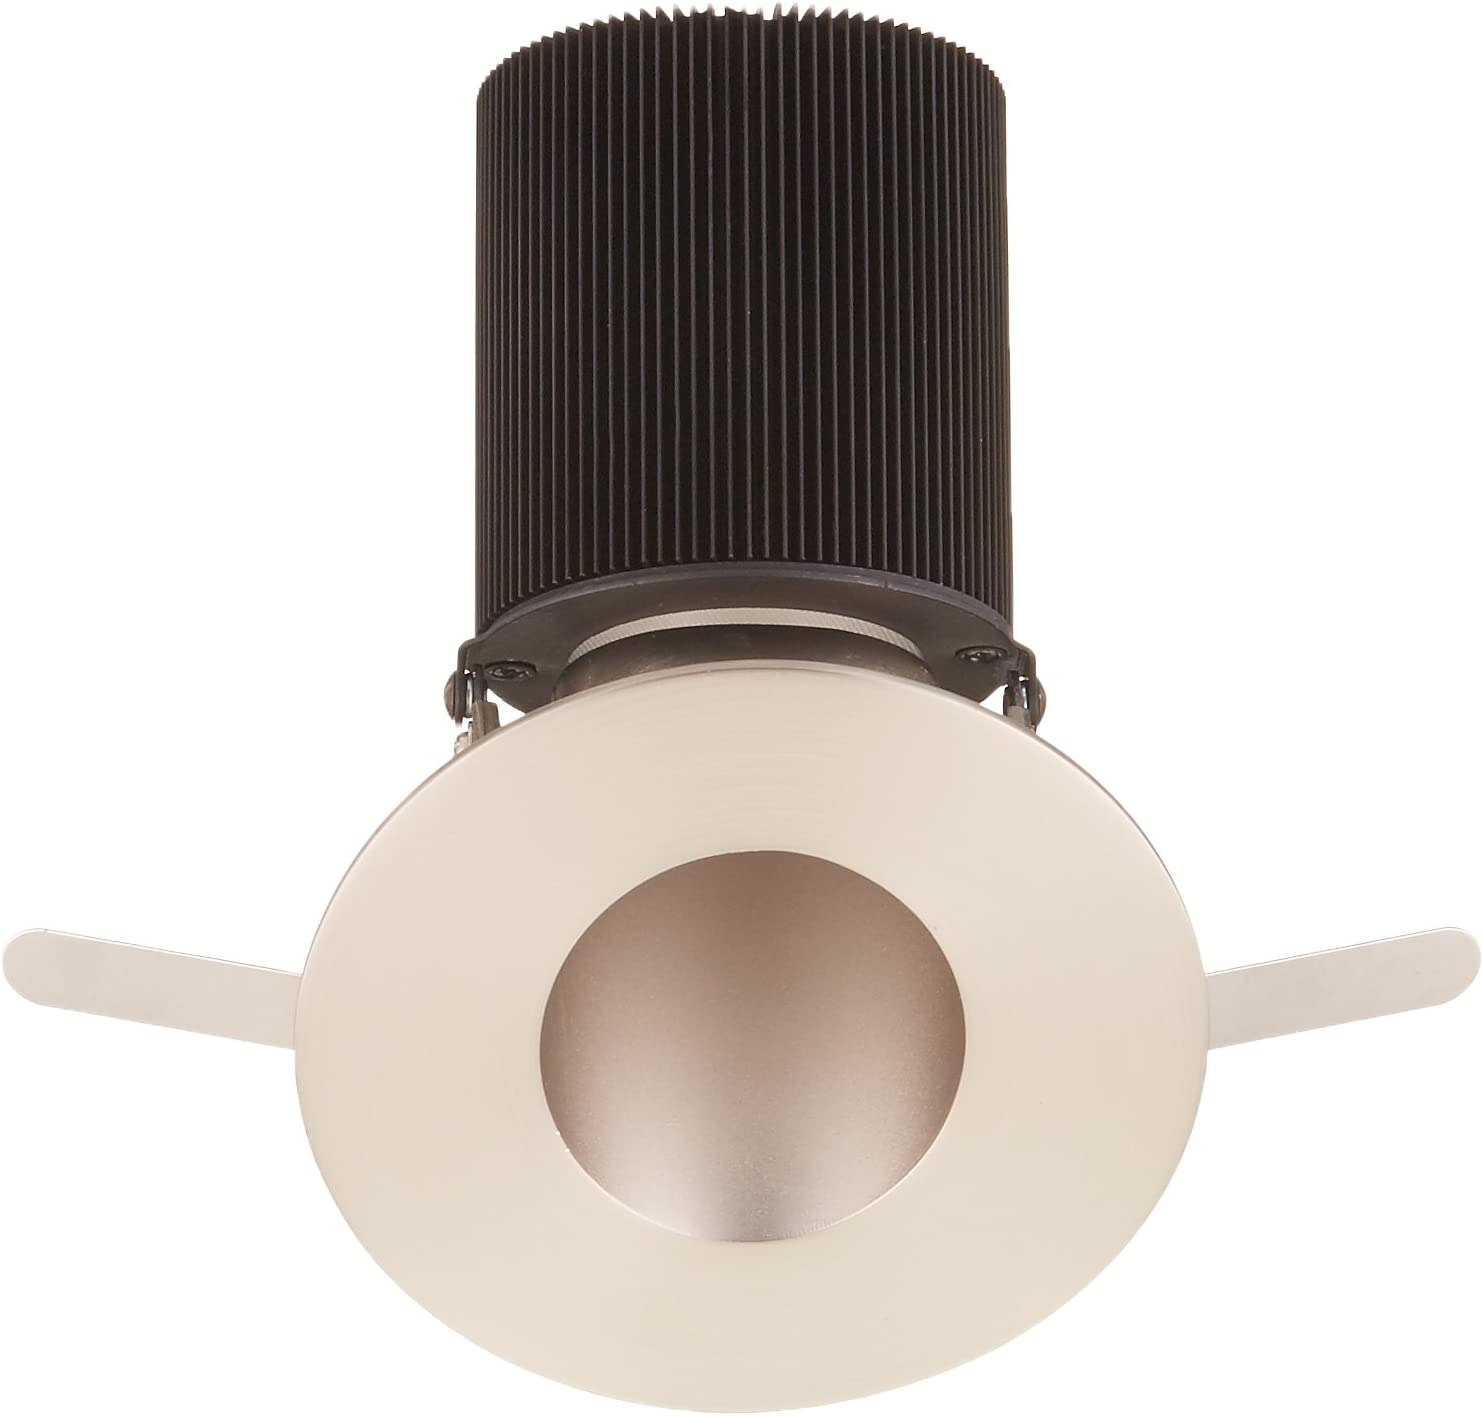 Warm Light 2700K WAC Lighting HR-2LED-T409S-27BN Tesla LED 2-Inch Adjustable 30-Degree to 45-Degree Round Trim with 15-Degree Beam Angle